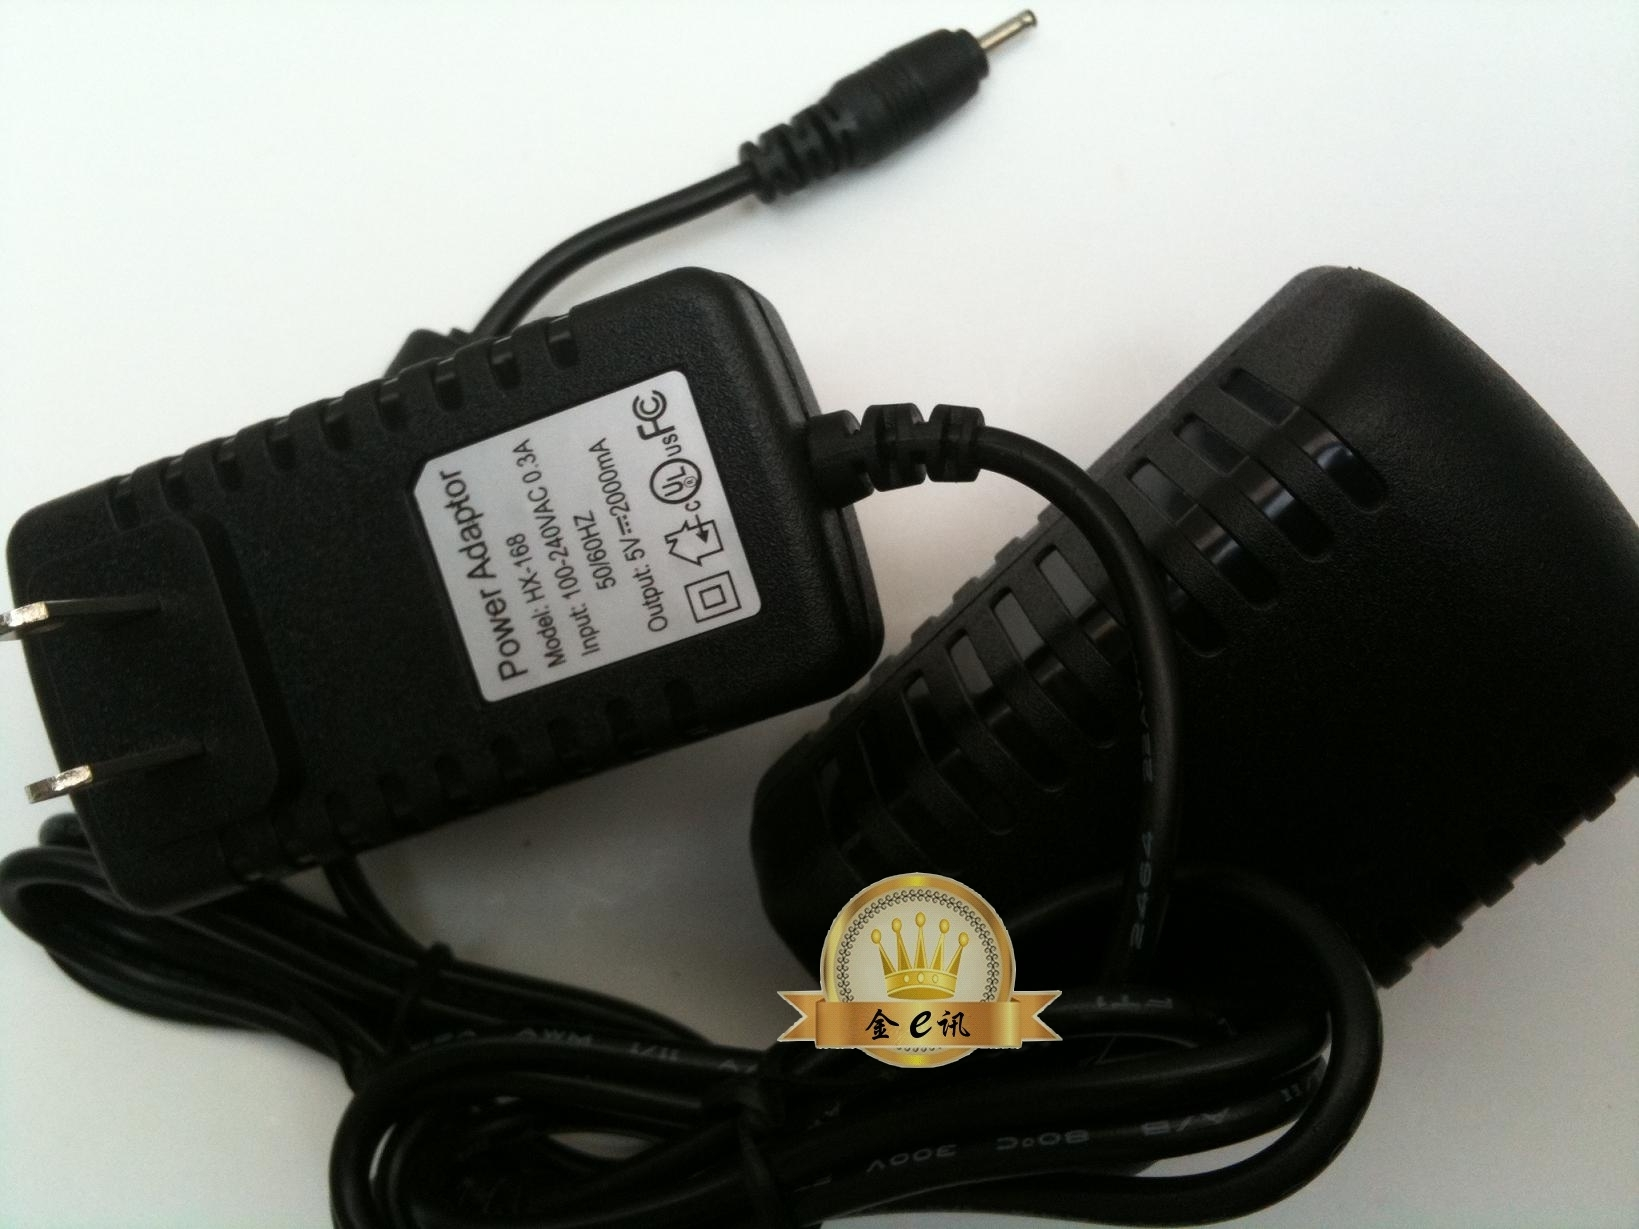 C704 c705 years novo7 tablet high quality charger 5v2adc3 . 5